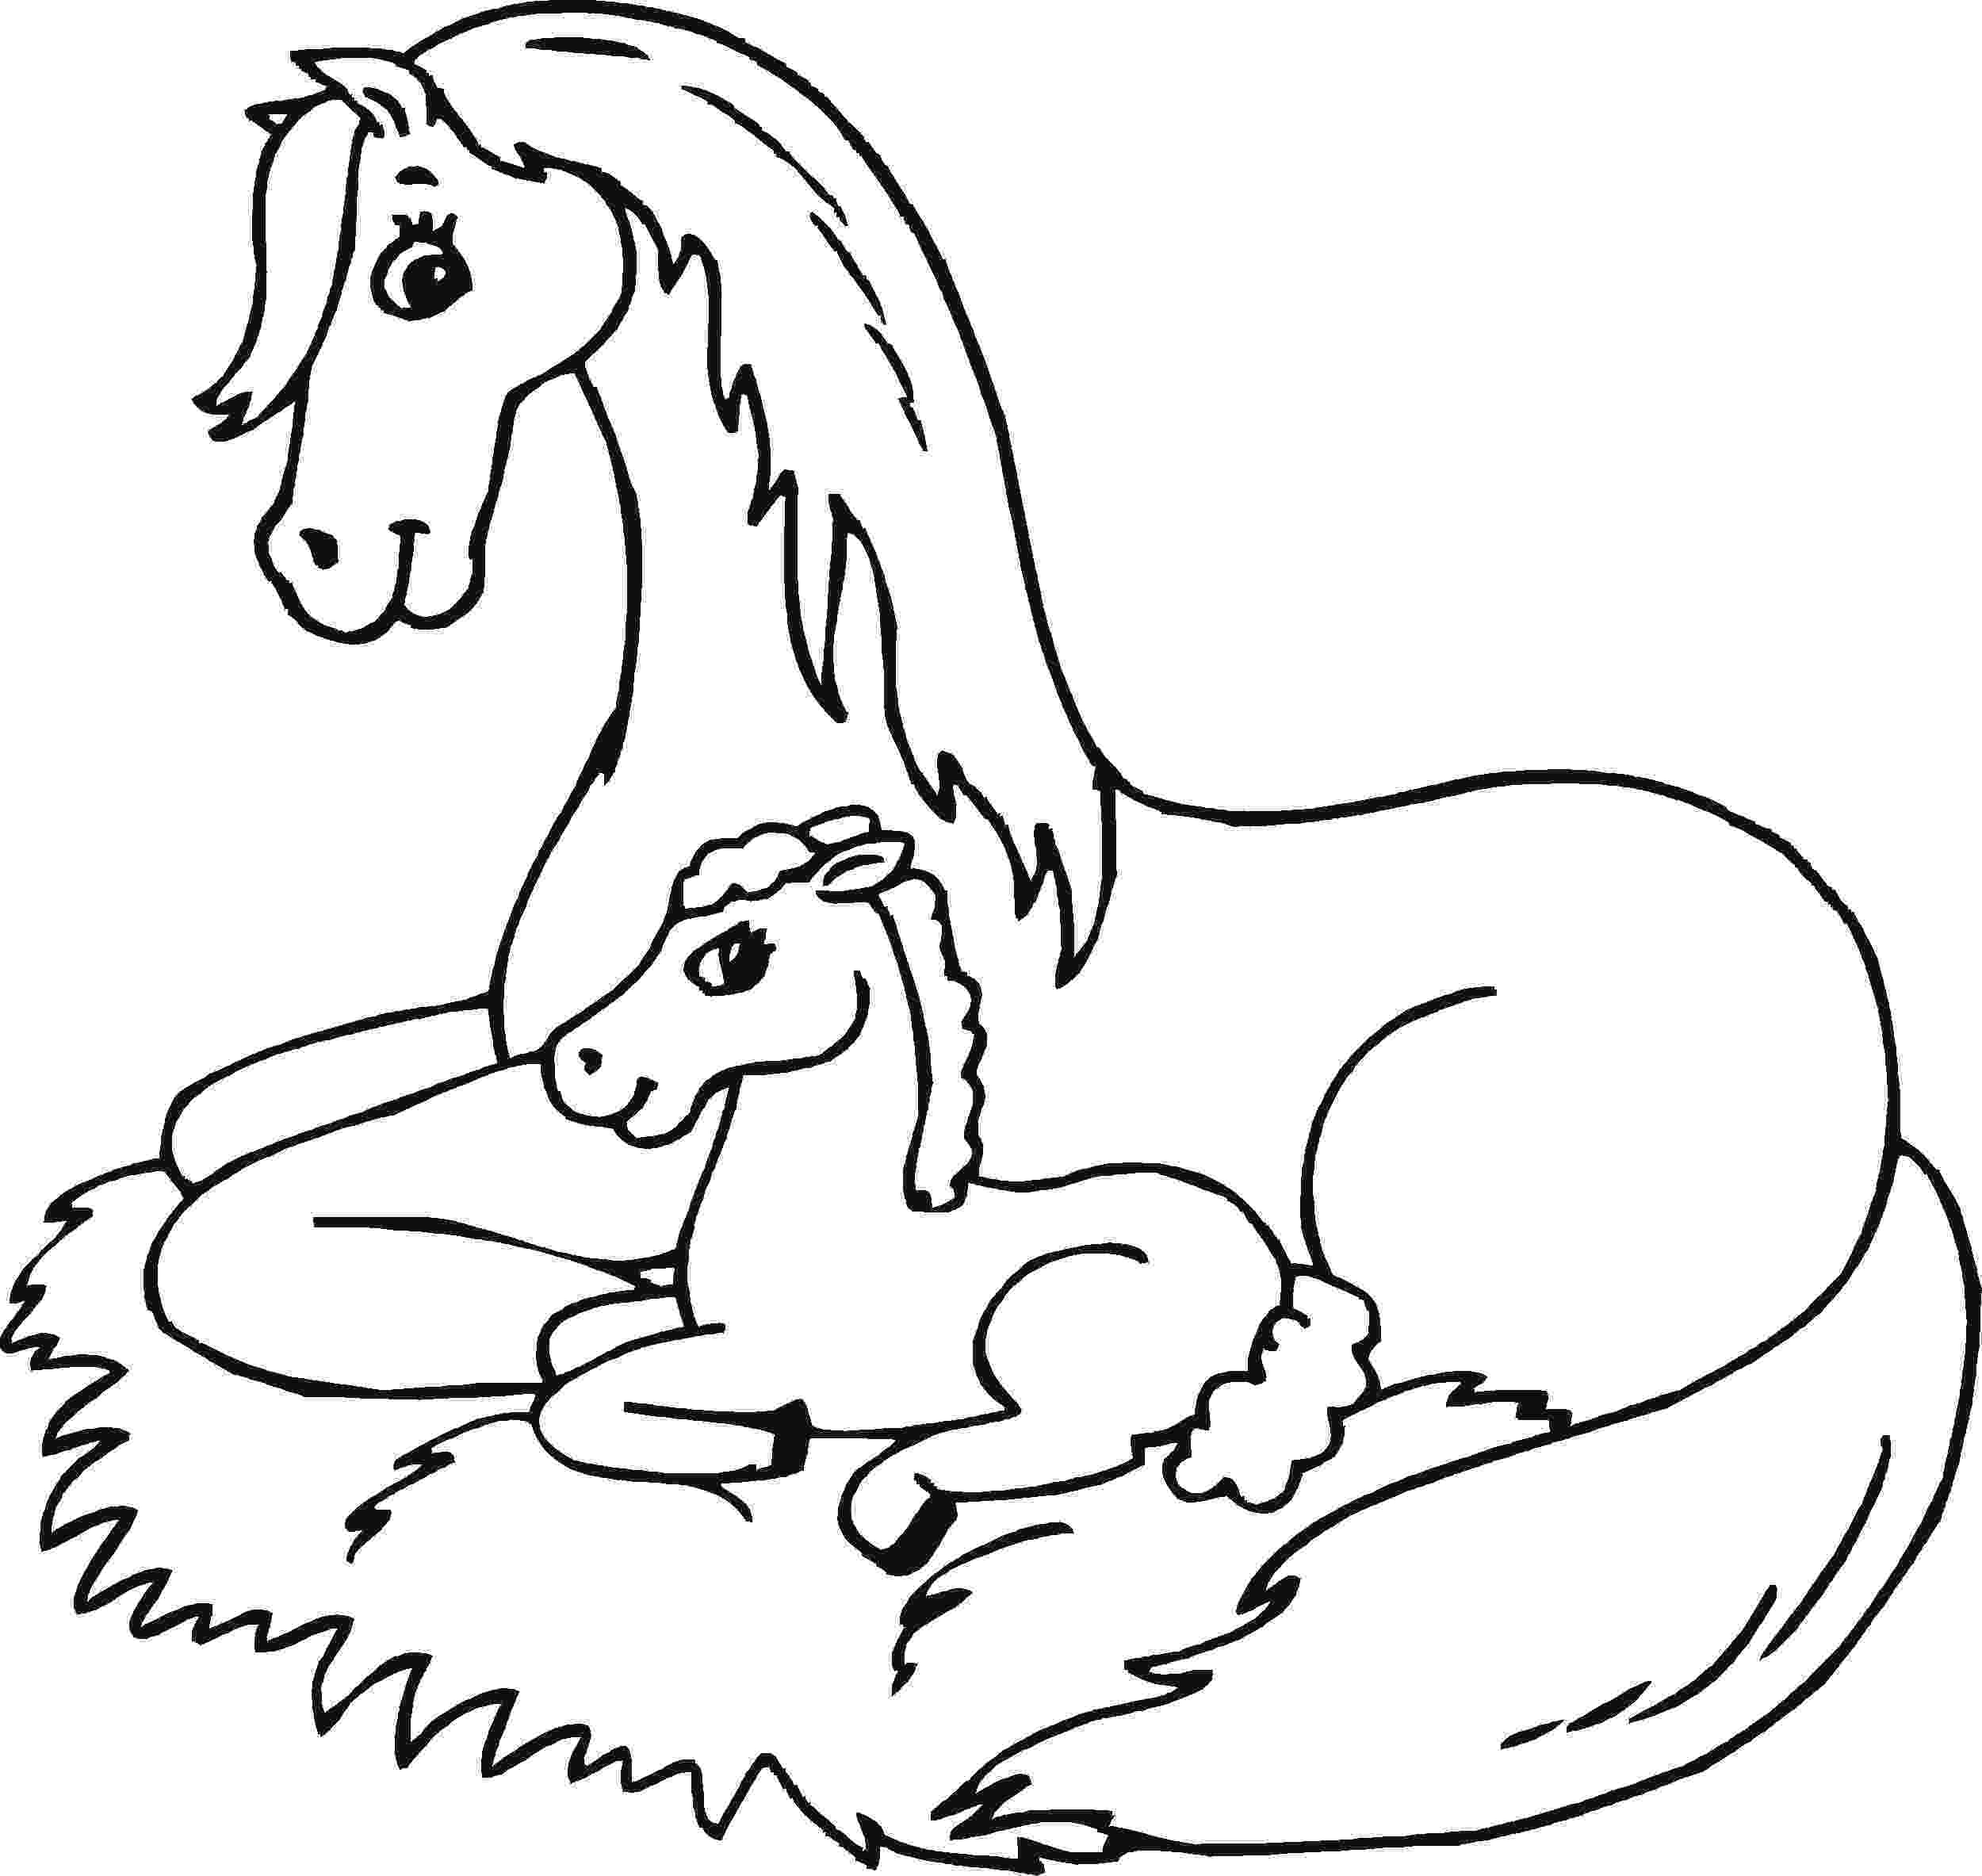 coloring pages of animals horses horse free download selah works horse coloring pages animals coloring horses pages of